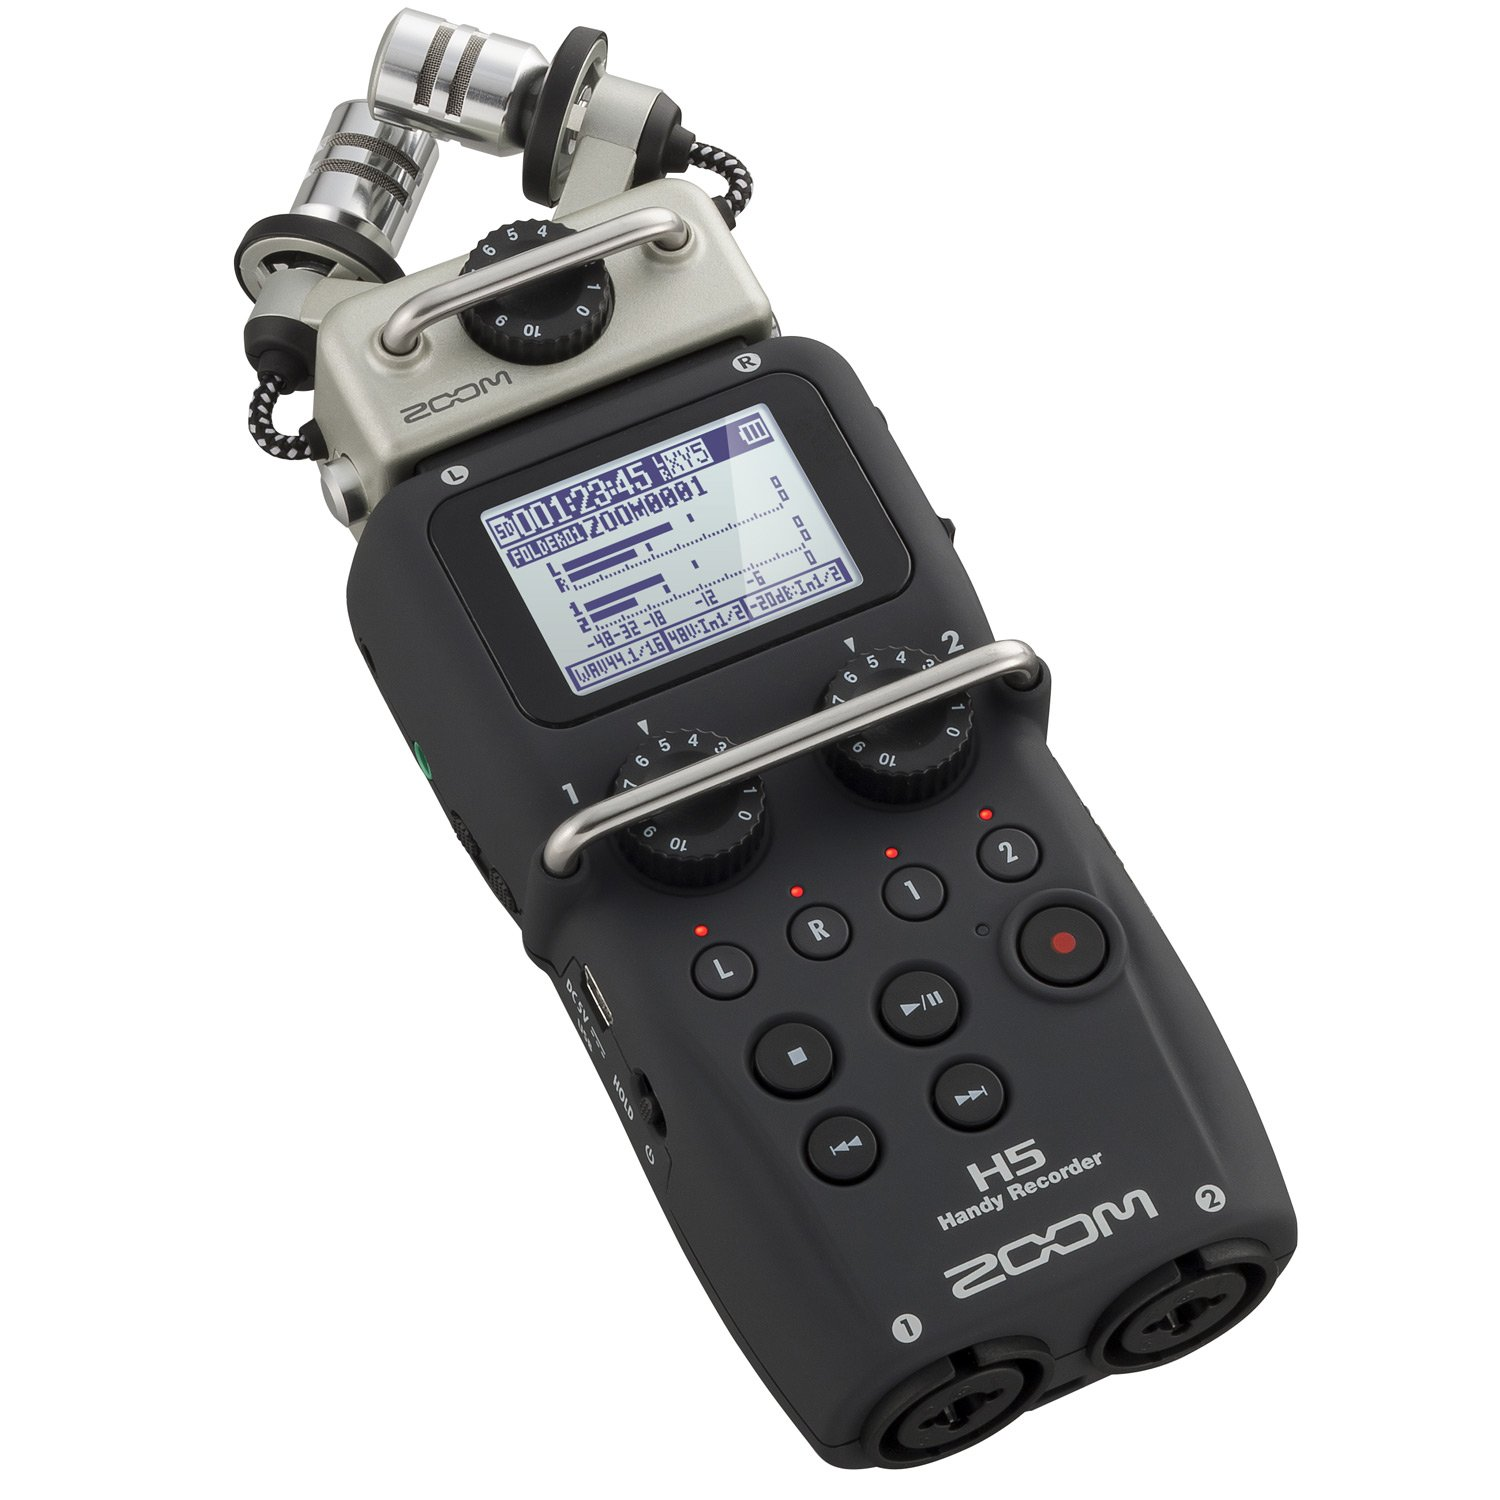 Zoom H5 Handy Recorder & PCH-5 Protective Case - Bundle by Zoom (Image #2)